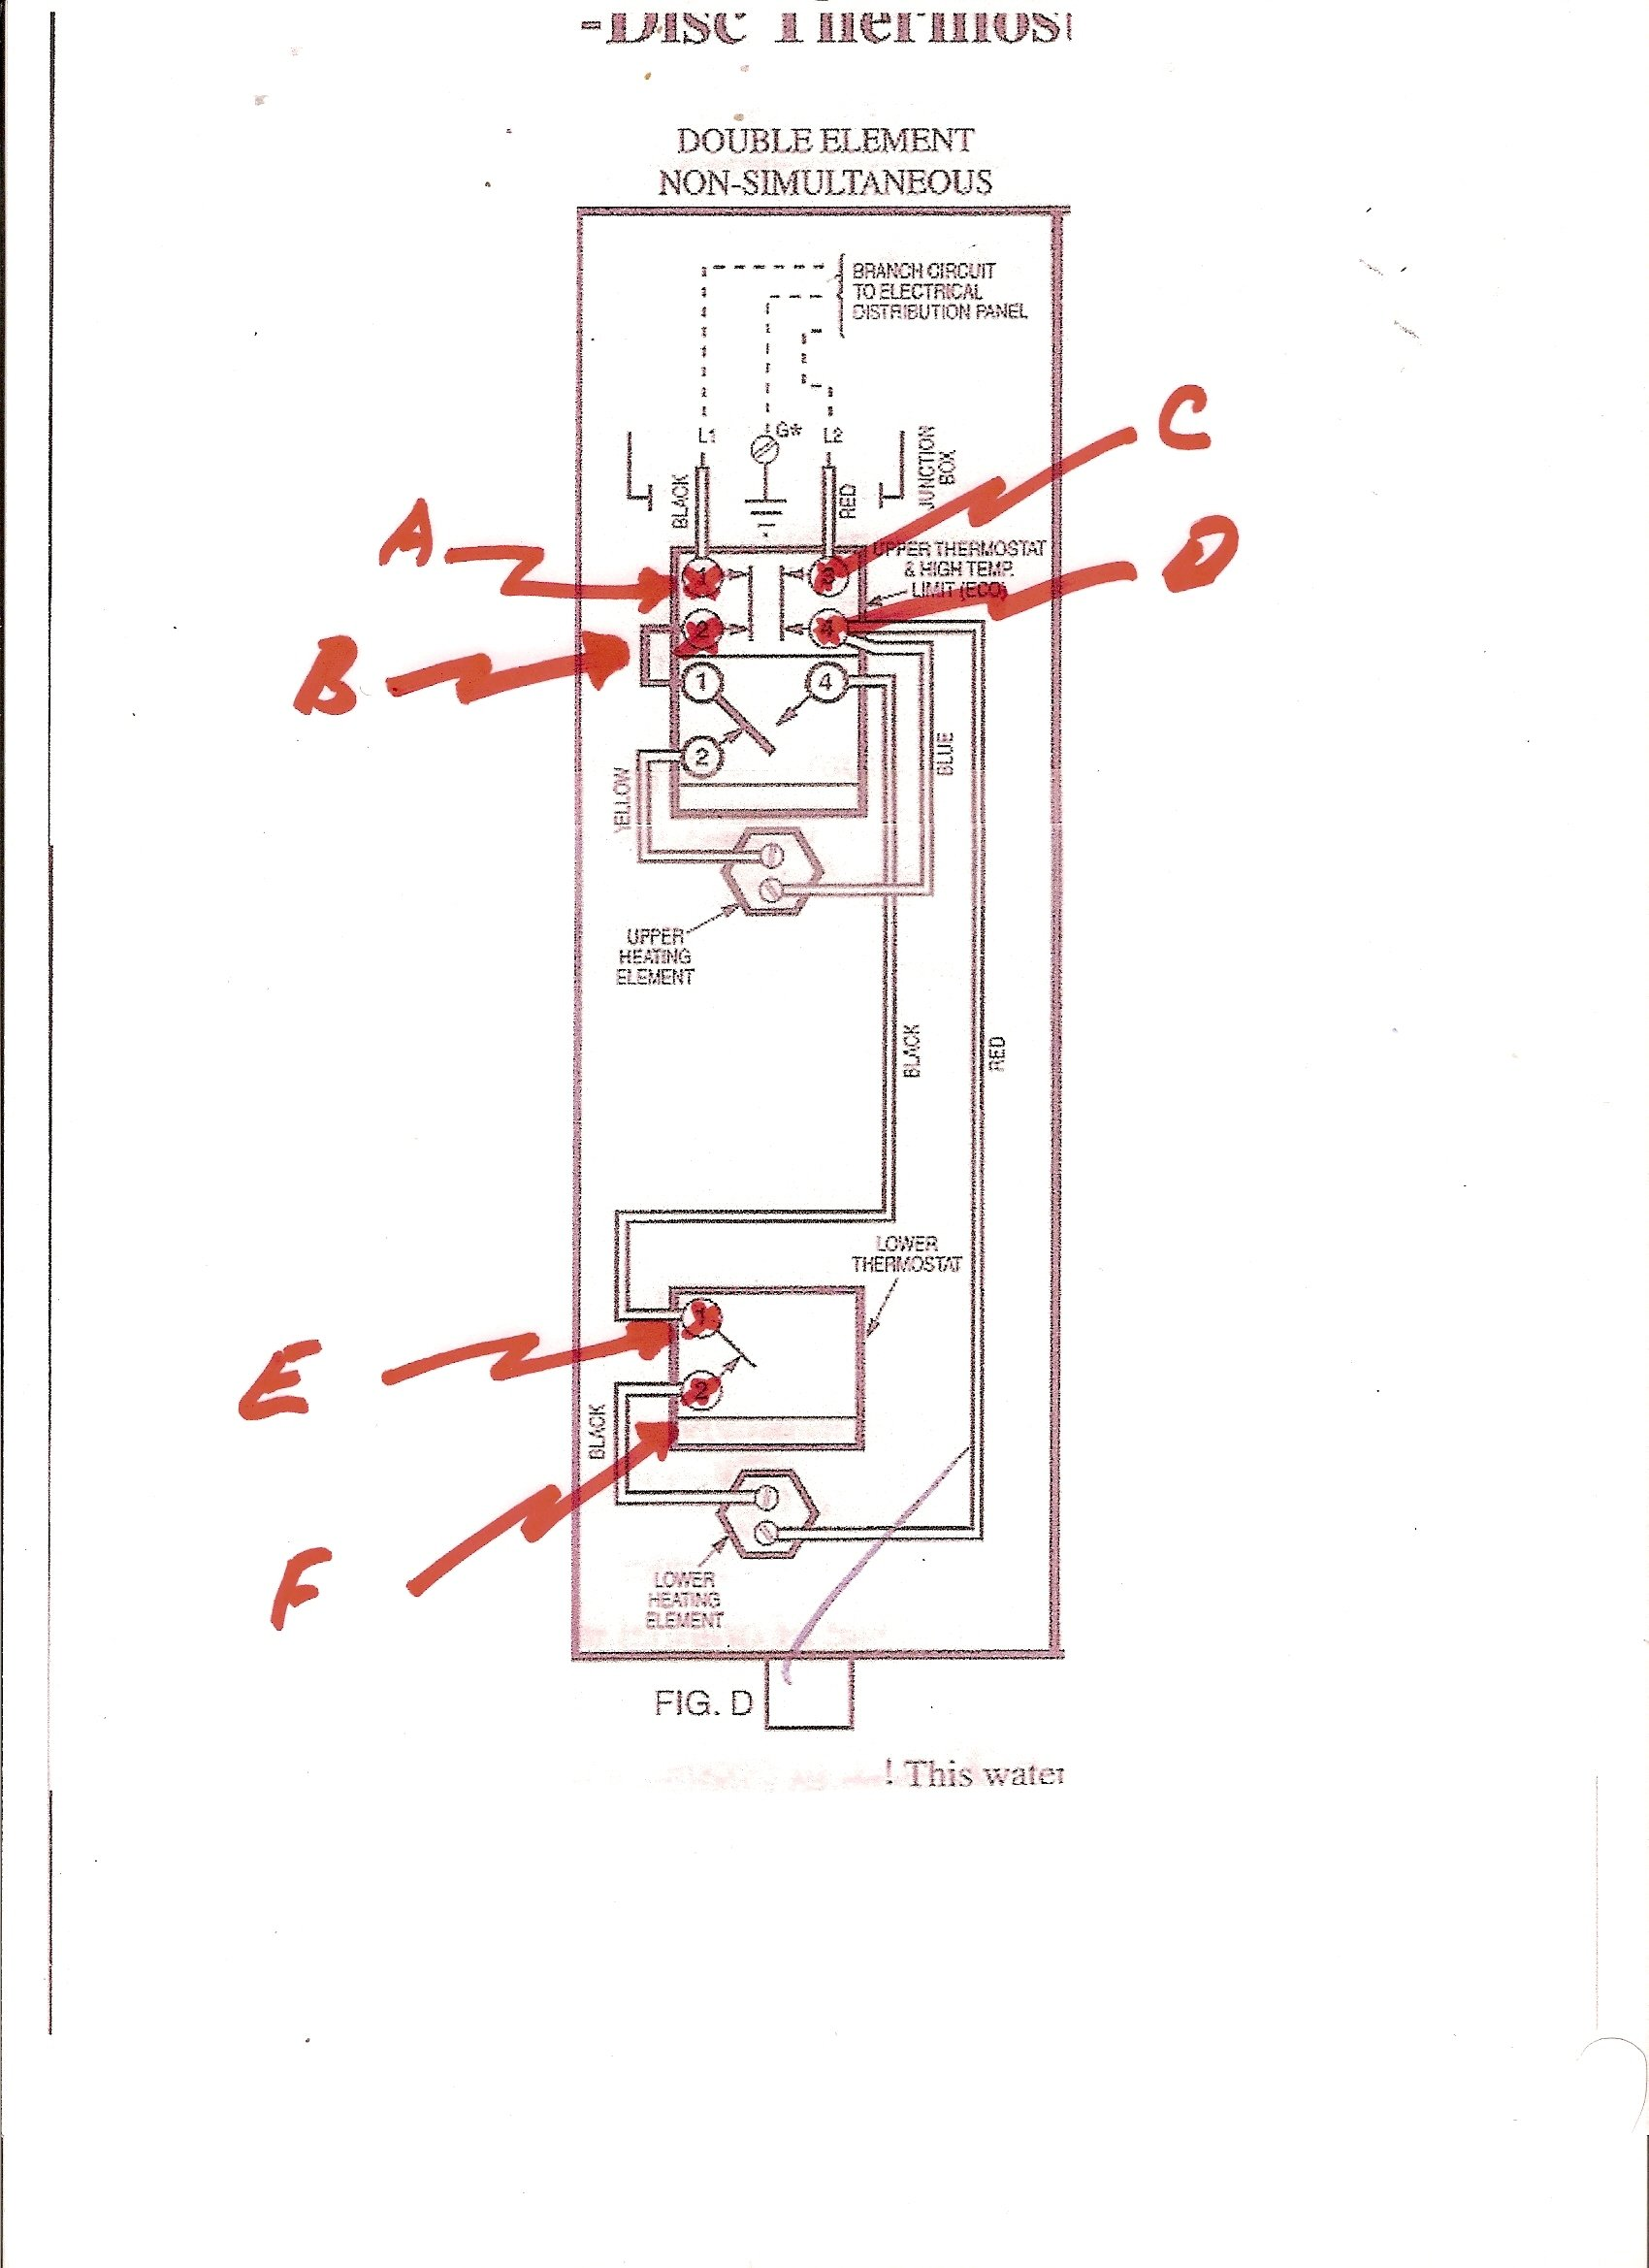 2010 11 18_183514_wh_wiring_0020001 i have a rheem 50 gallon, double element water heater which is one rheem electric water heater wiring diagram at mr168.co